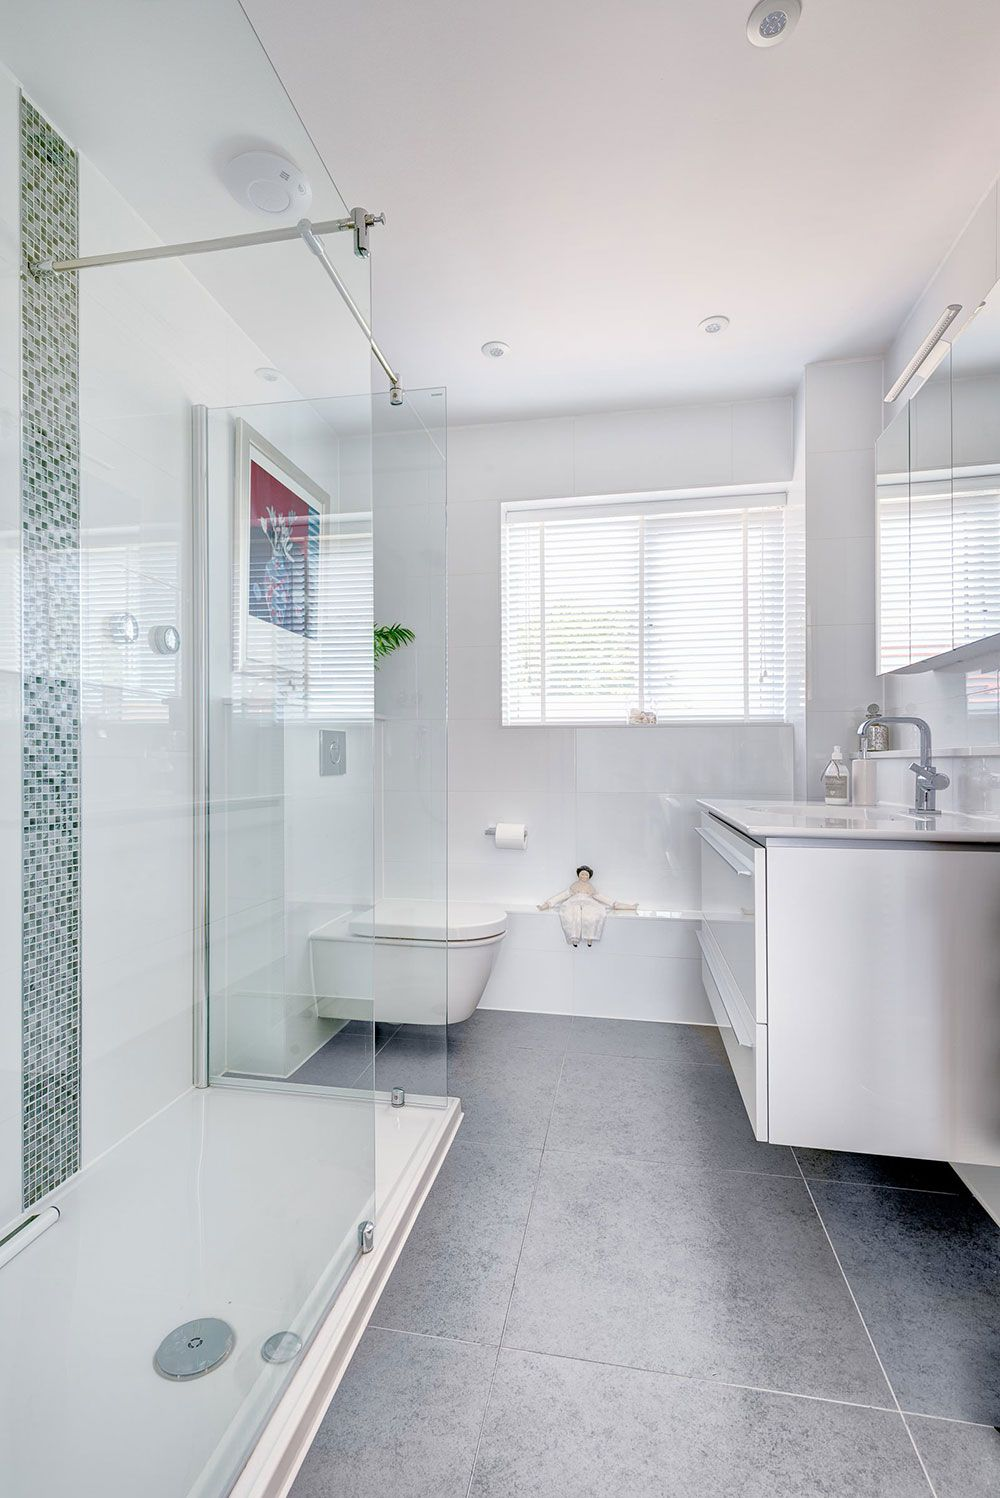 Bon How To Make A Small Bathroom Look Bigger Has Numerous Ideas, But Using  Glass Doors On The Shower/tub Instead Of A Shower Curtain Is One Of My  Favorites.